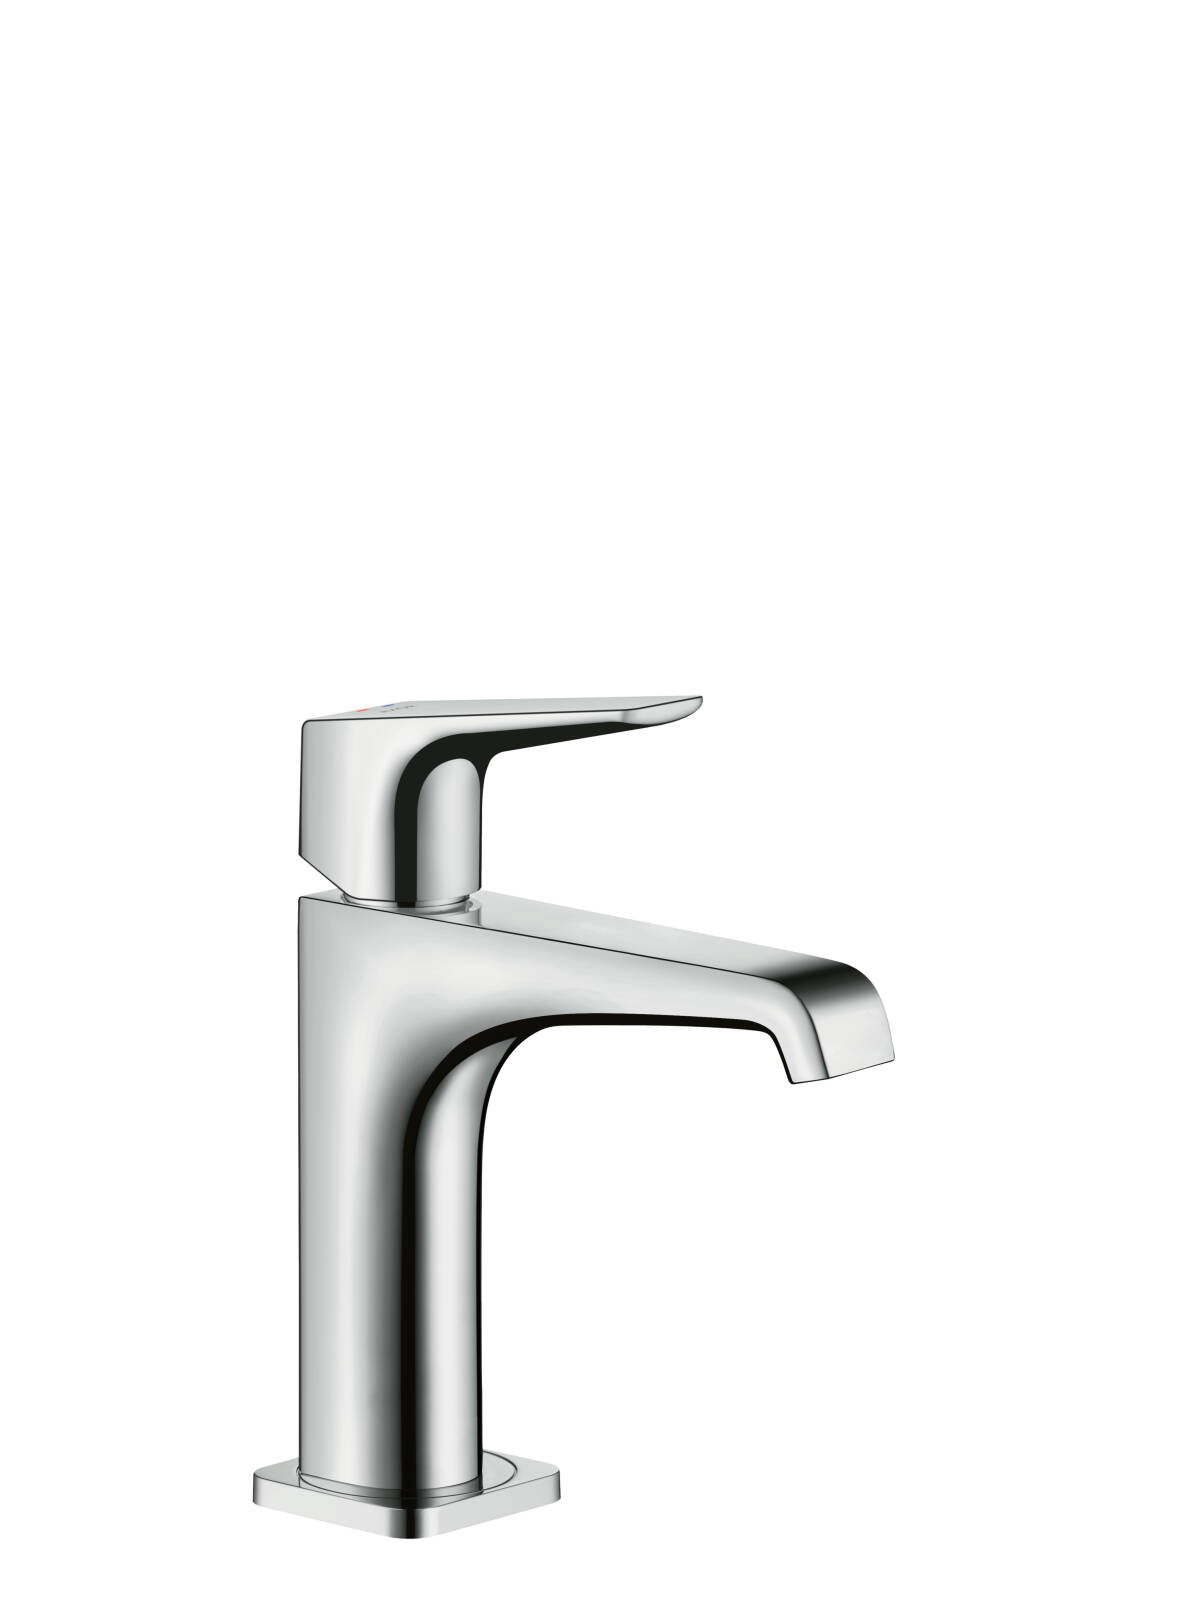 Single lever basin mixer 130 with lever handle and waste set, Brushed Black Chrome, 36111340